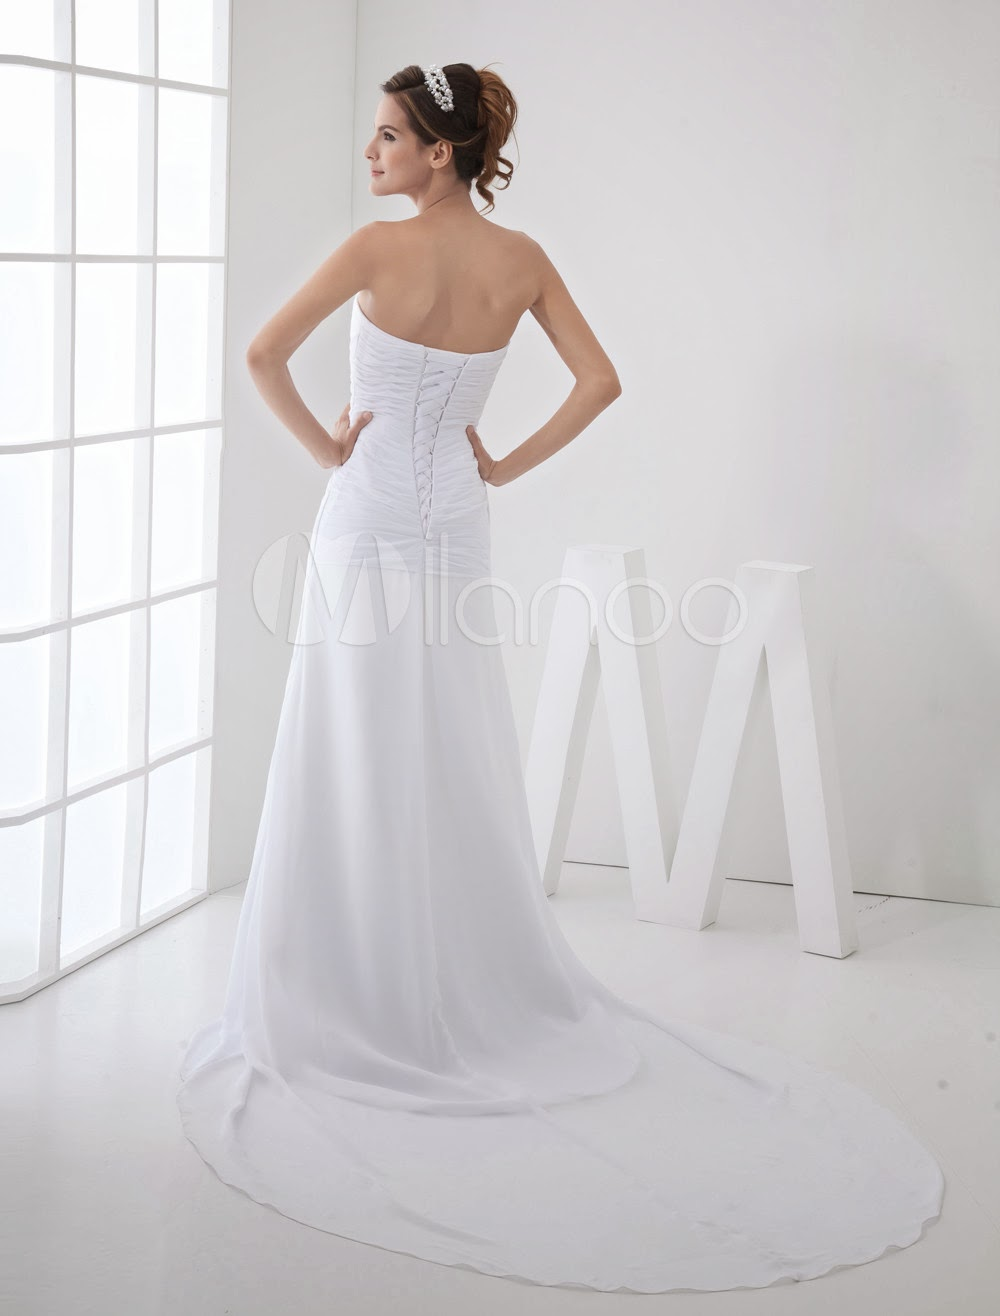 China Wholesale Dresses - Simple A-line Strapless Beading Satin Chiffon Wedding Dress